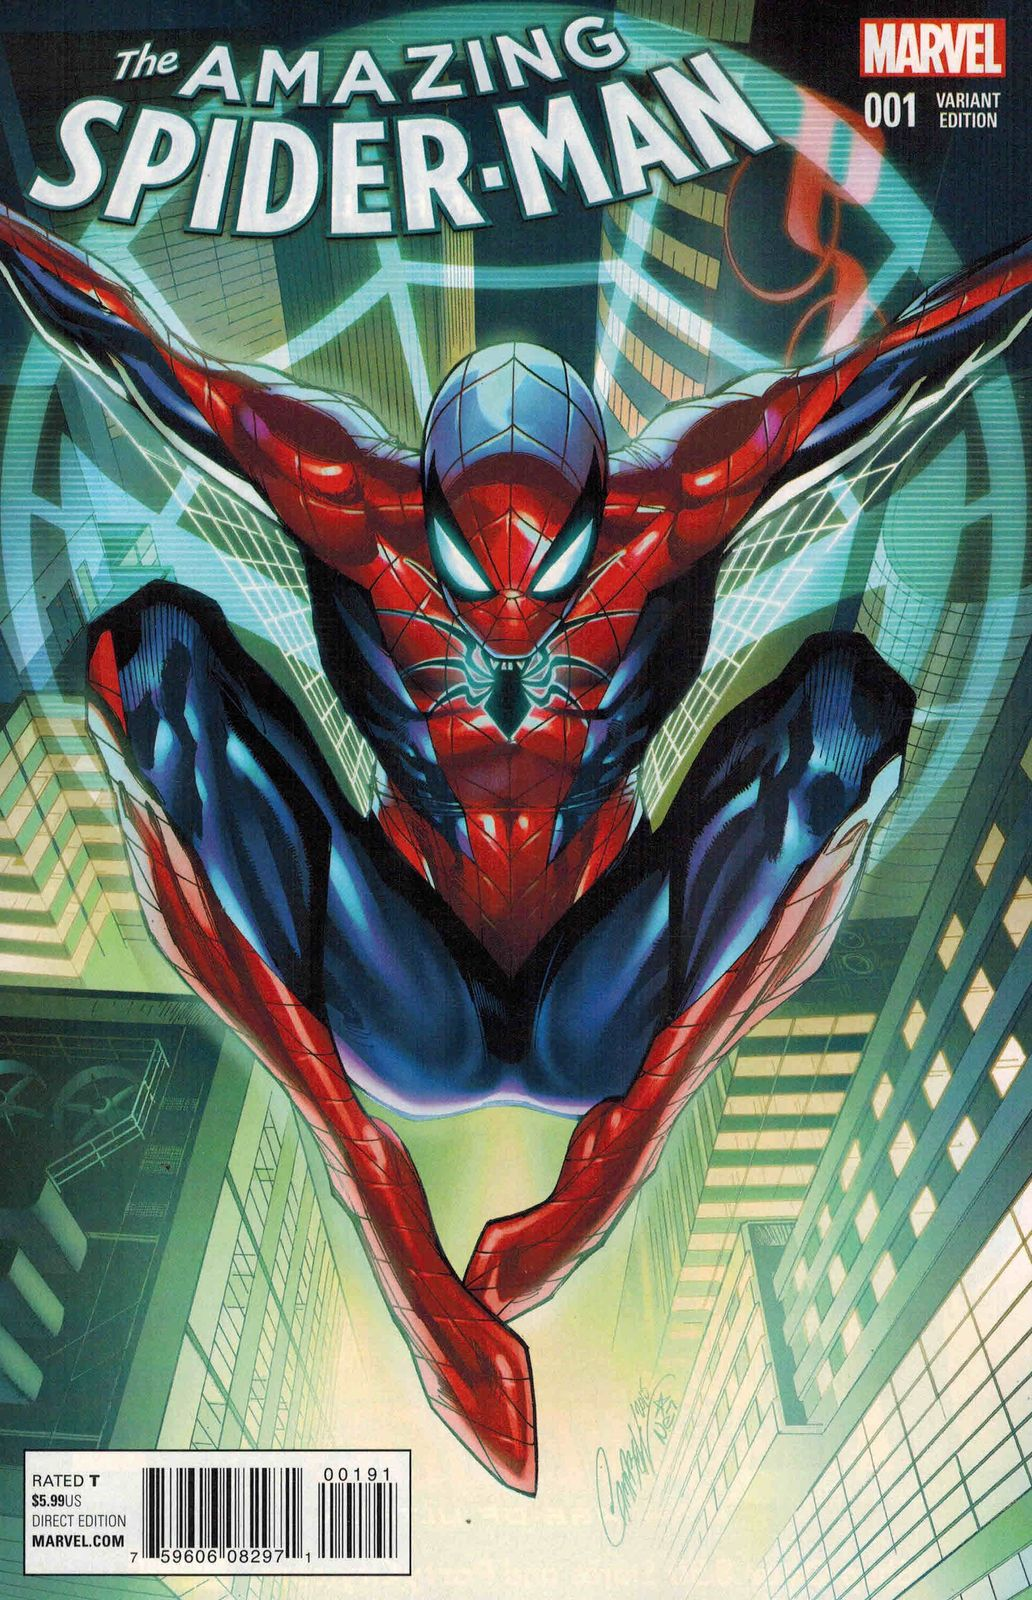 Details about Amazing Spider-Man #1 1:50 J Scott Campbell